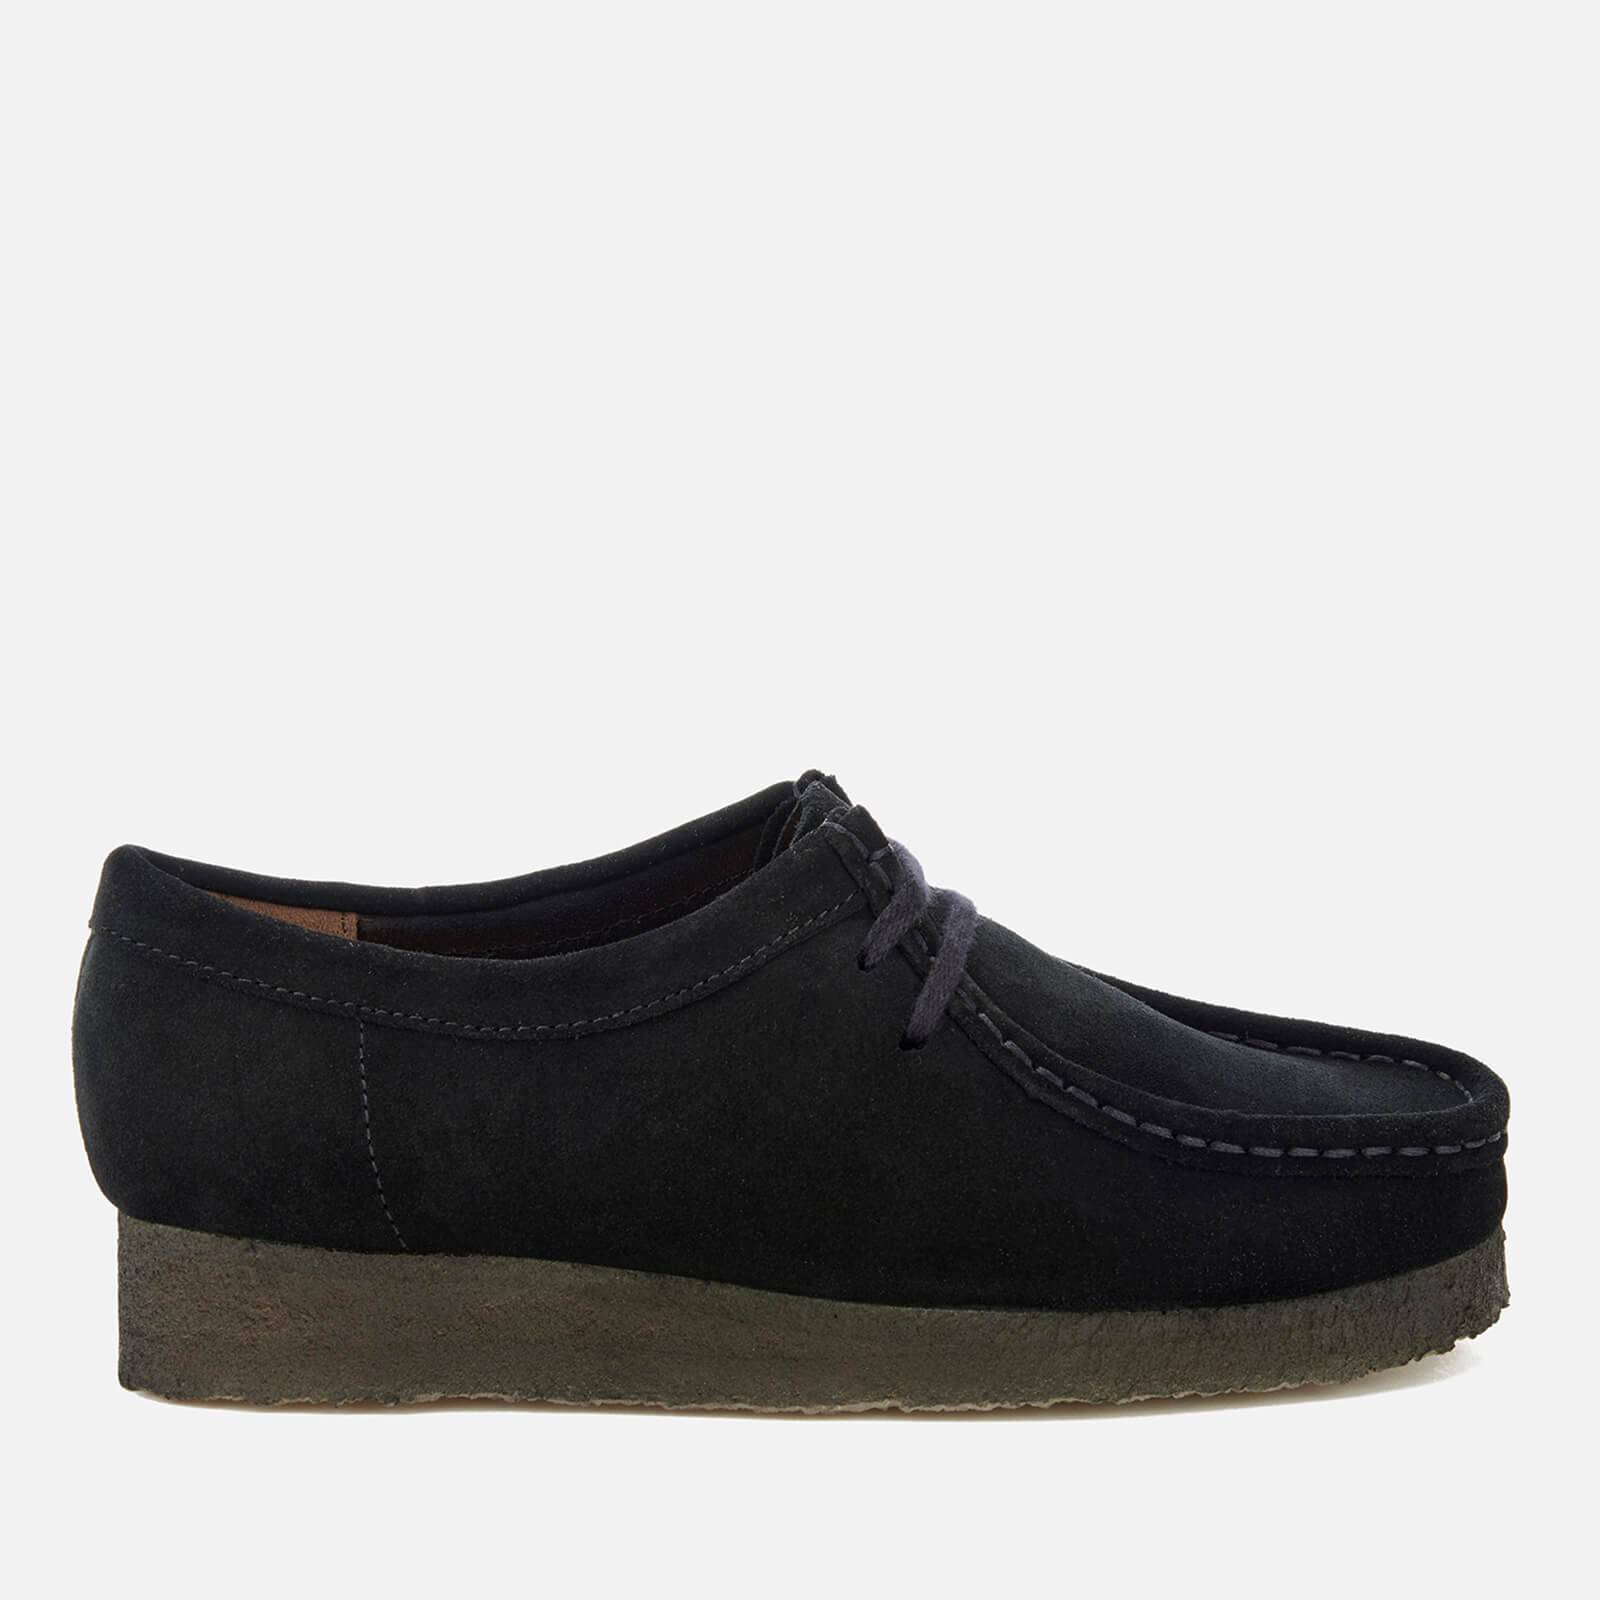 Clarks Originals Women's Wallabee Shoes - Black Suede - UK 4 - Black